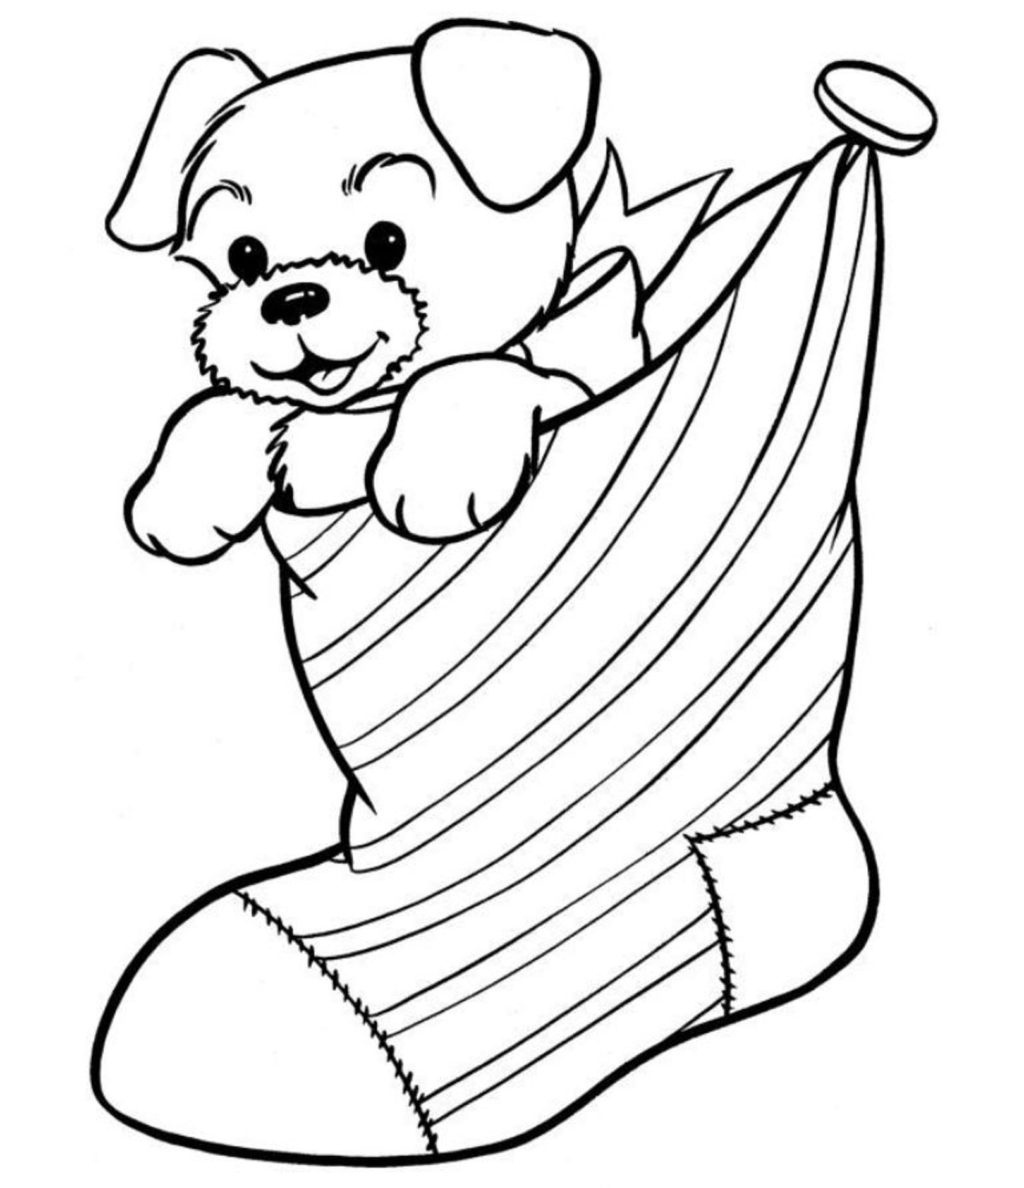 Coloring Book World ~ Christmas Coloring Pages Printable With Santa - Xmas Coloring Pages Free Printable